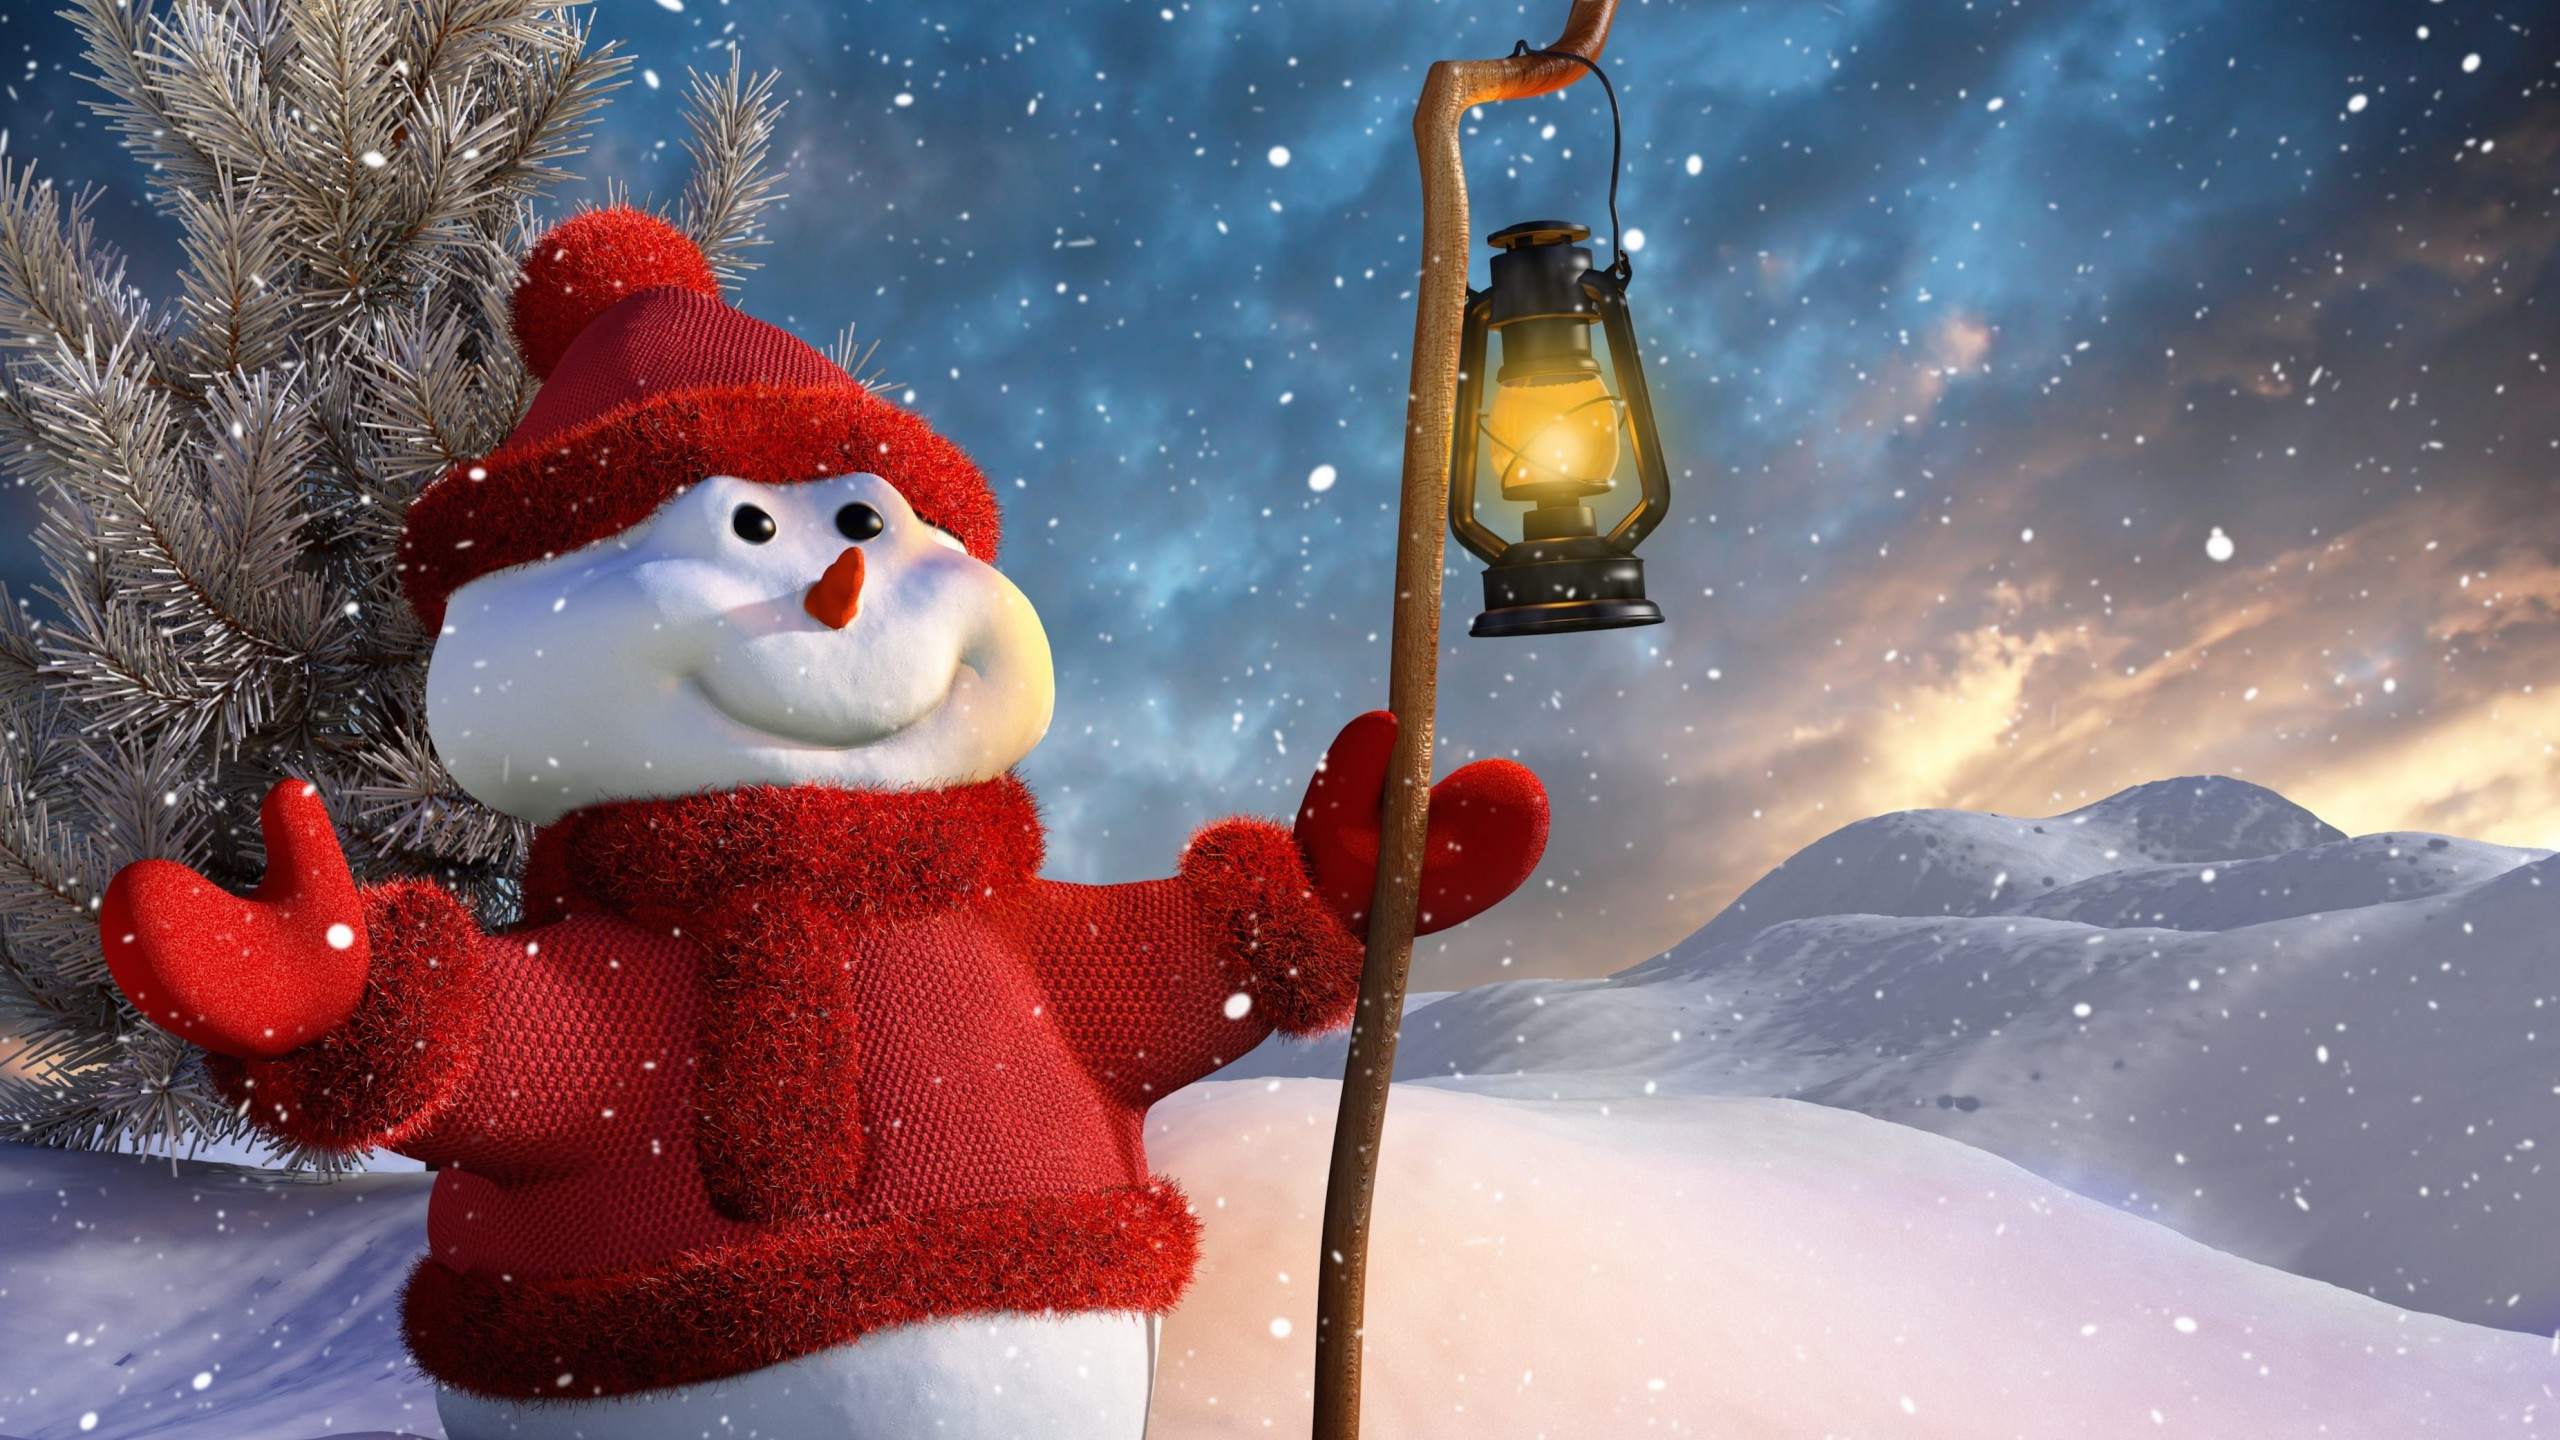 Christmas Snowman Wallpaper for Social Media YouTube Channel Art